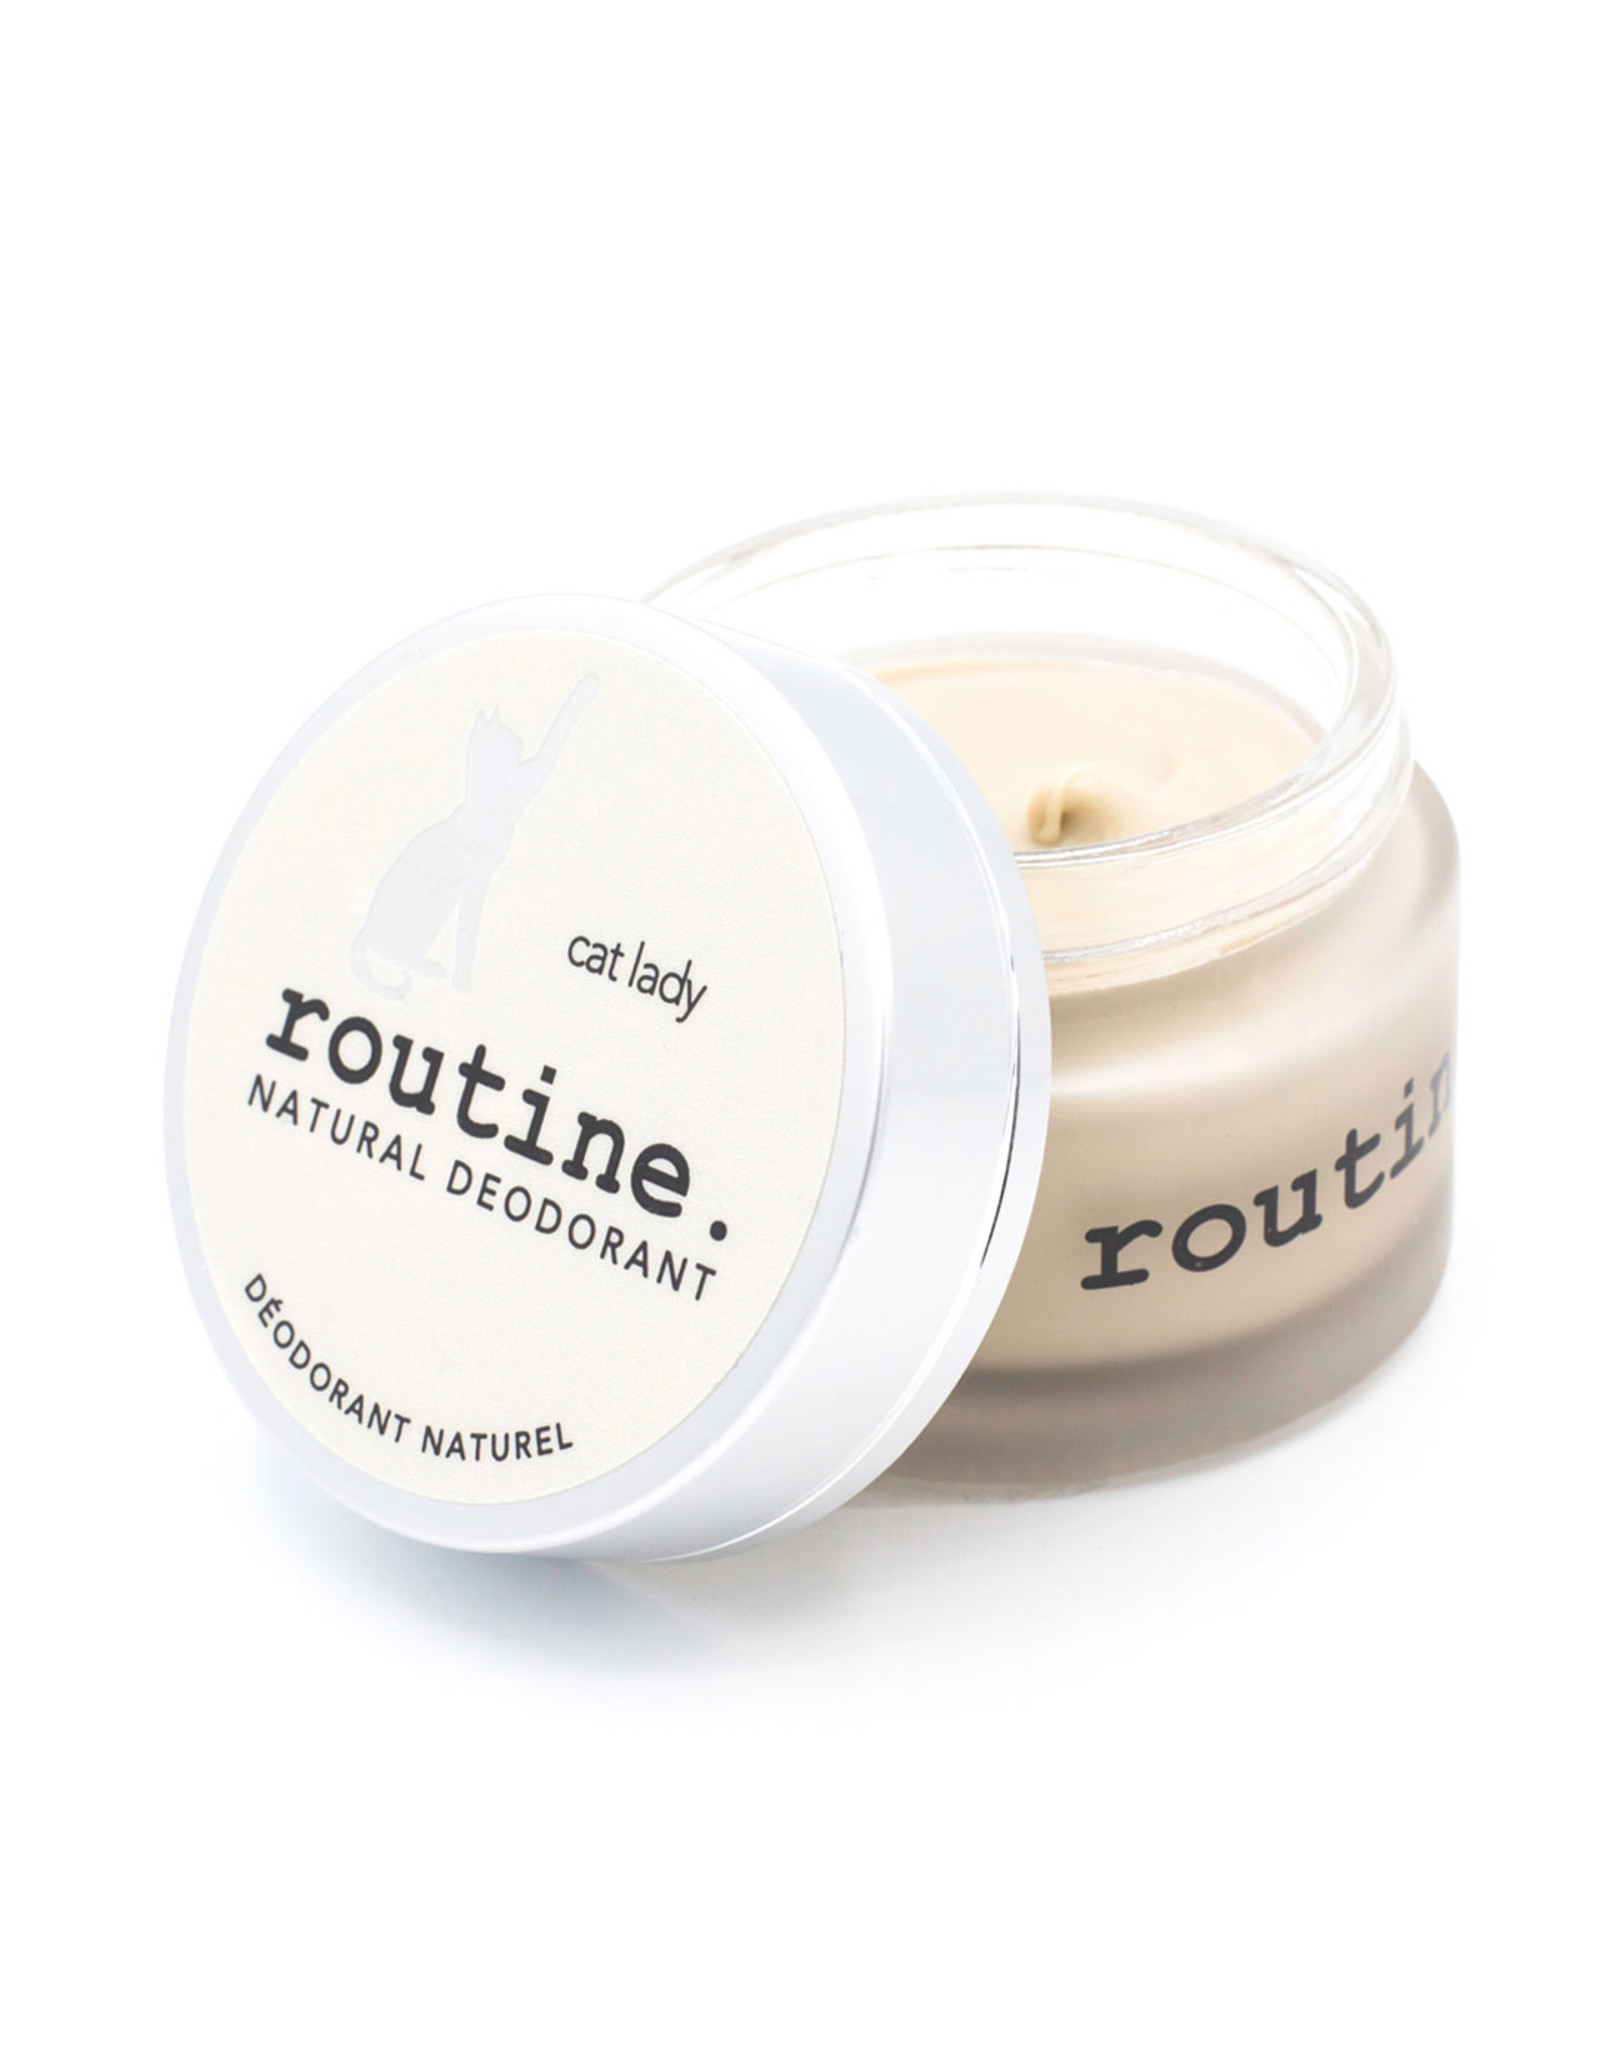 Routine Cat Lady - Natural Deodorant Cream